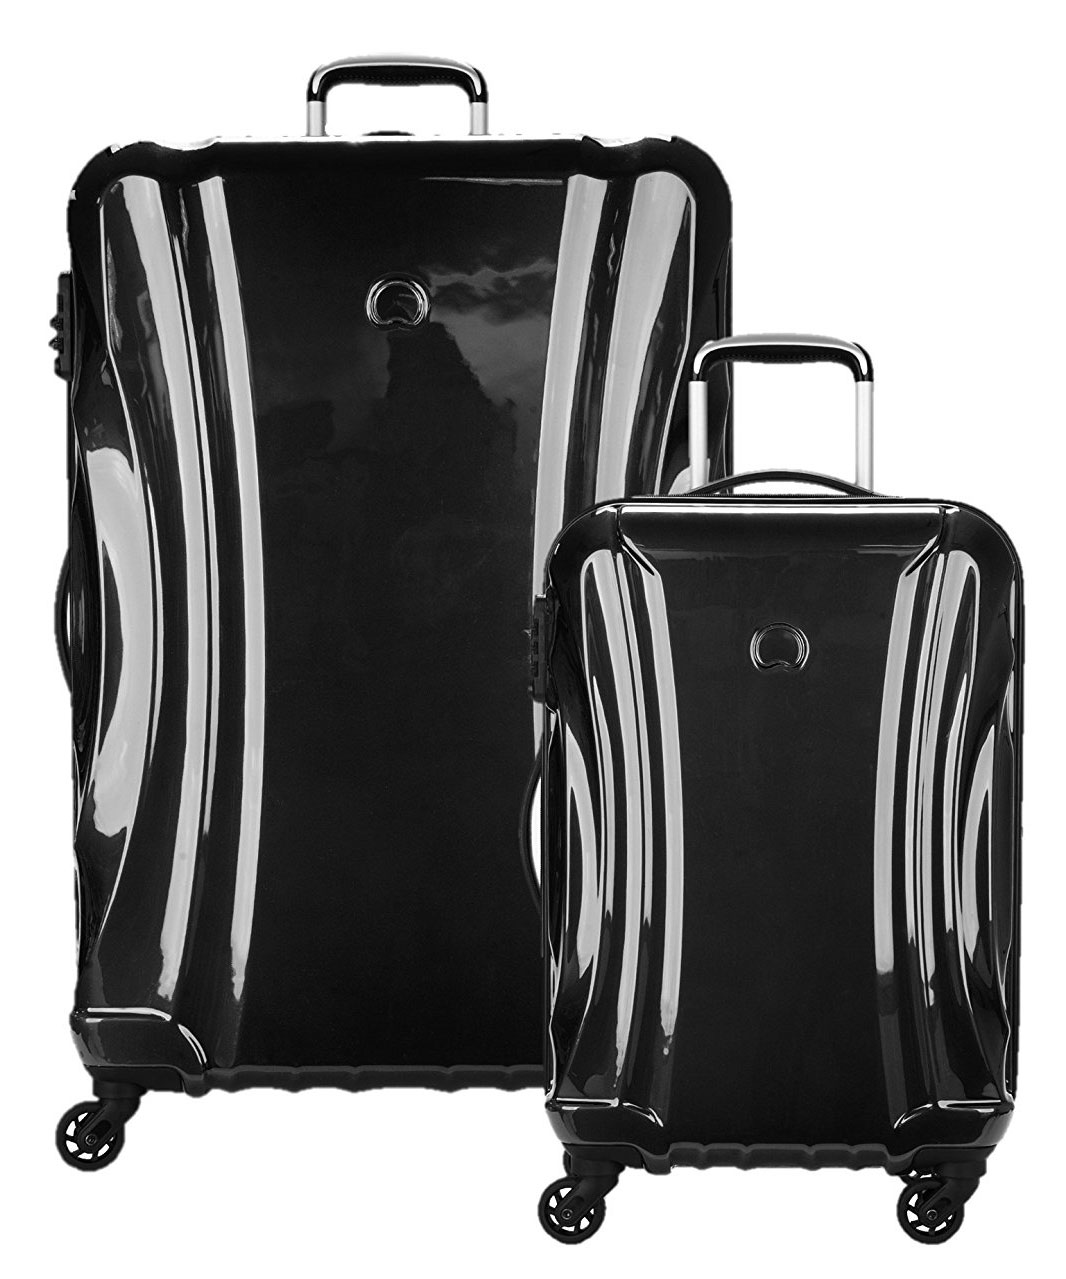 Delsey Luggage Passenger Lite 2 Piece Exp 4 Set (21 /29 )